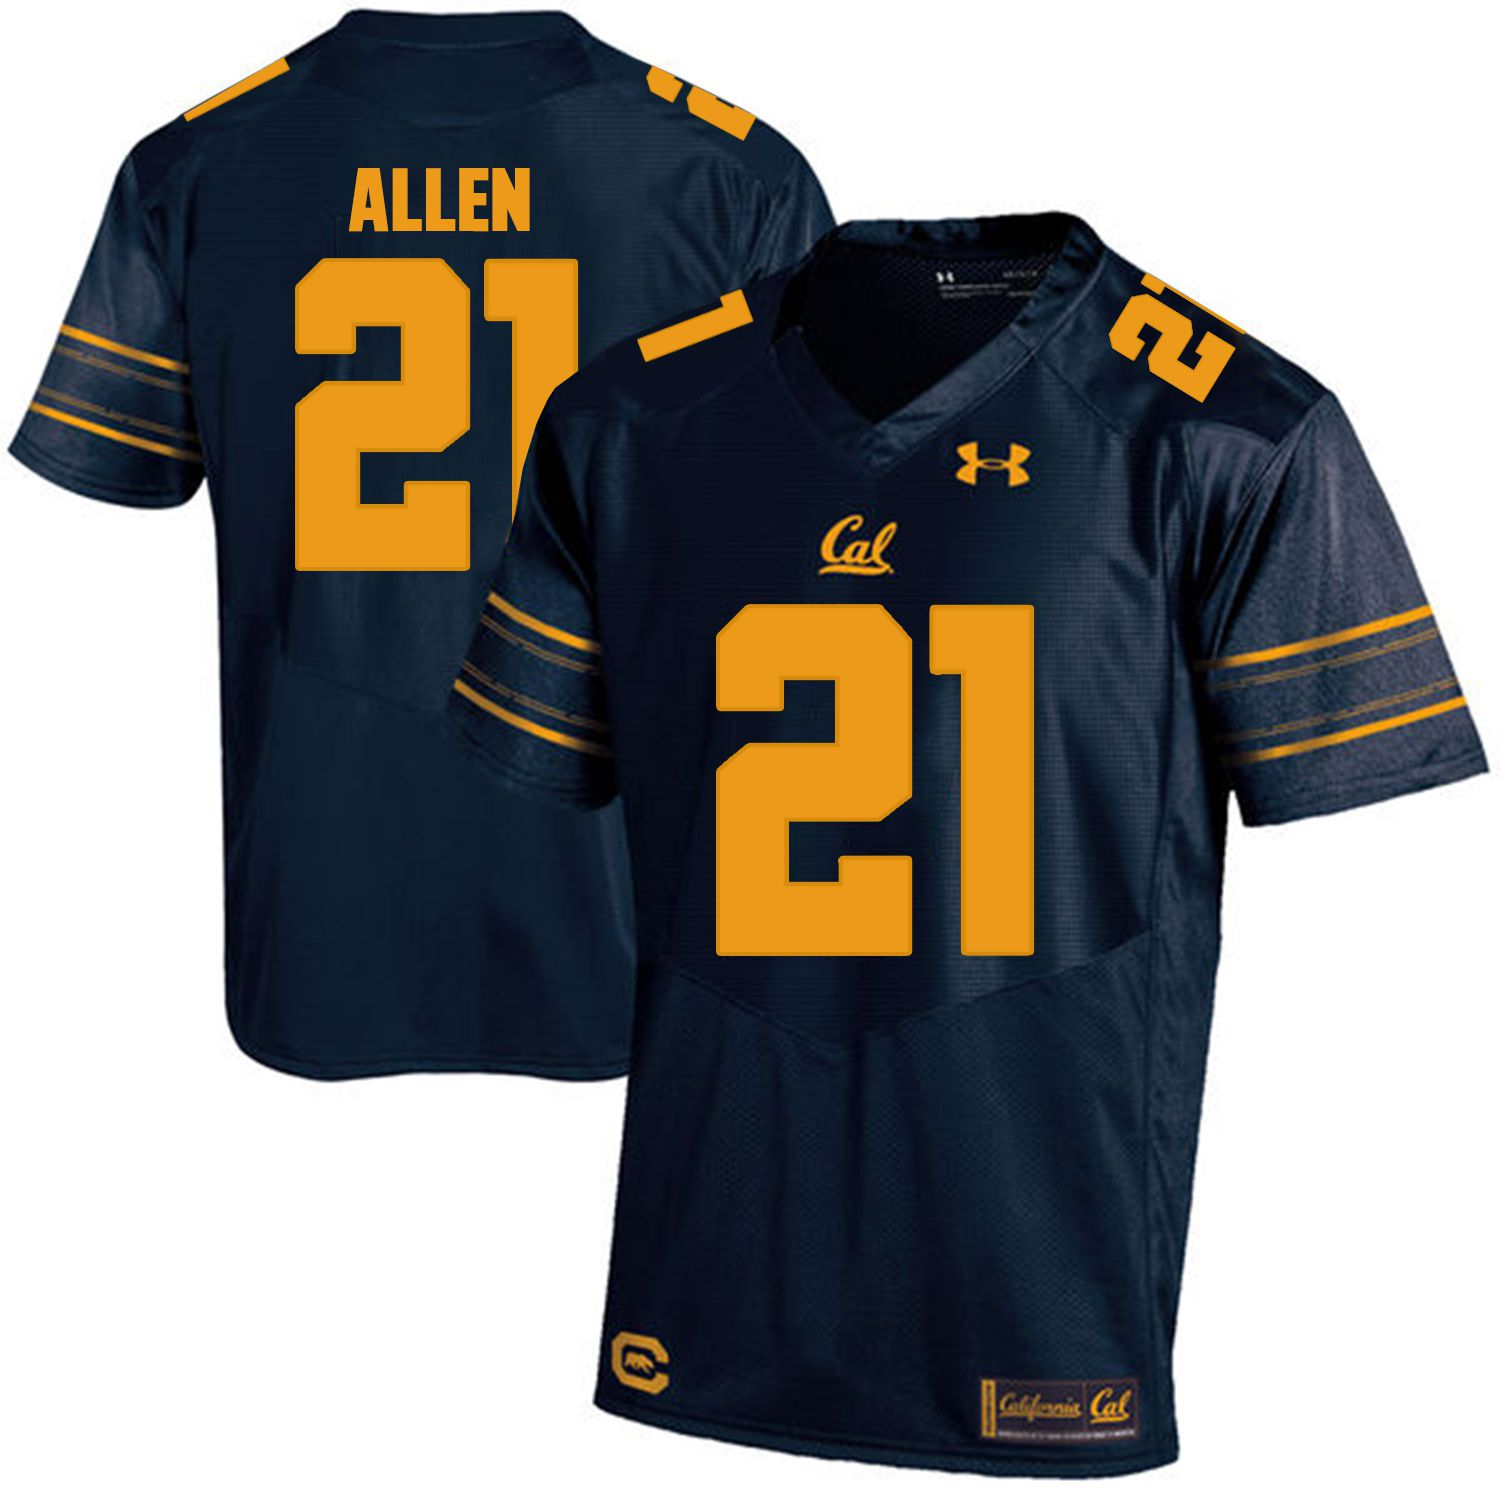 Men California Golden Bears 21 Keenan Allen Dark blue Customized NCAA Jerseys1